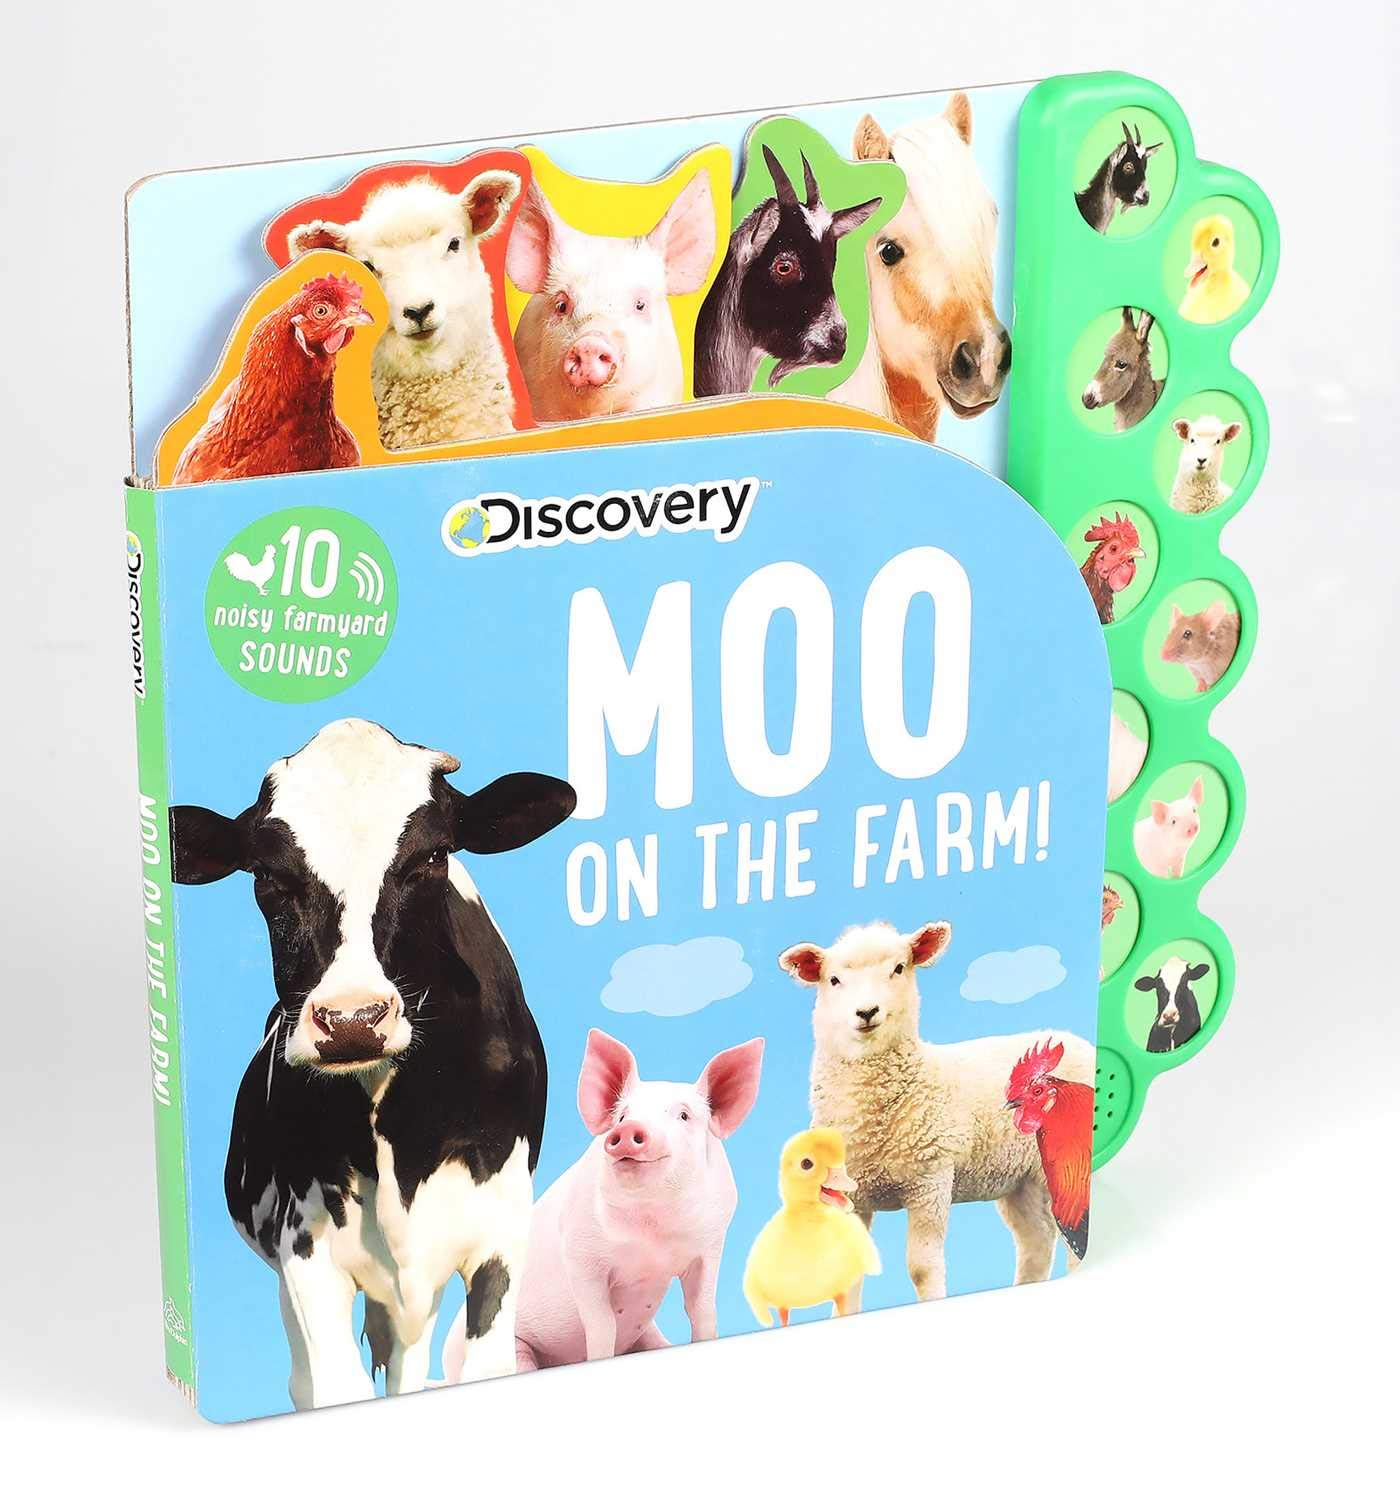 Moo on the Farm Board Book – Sound Book